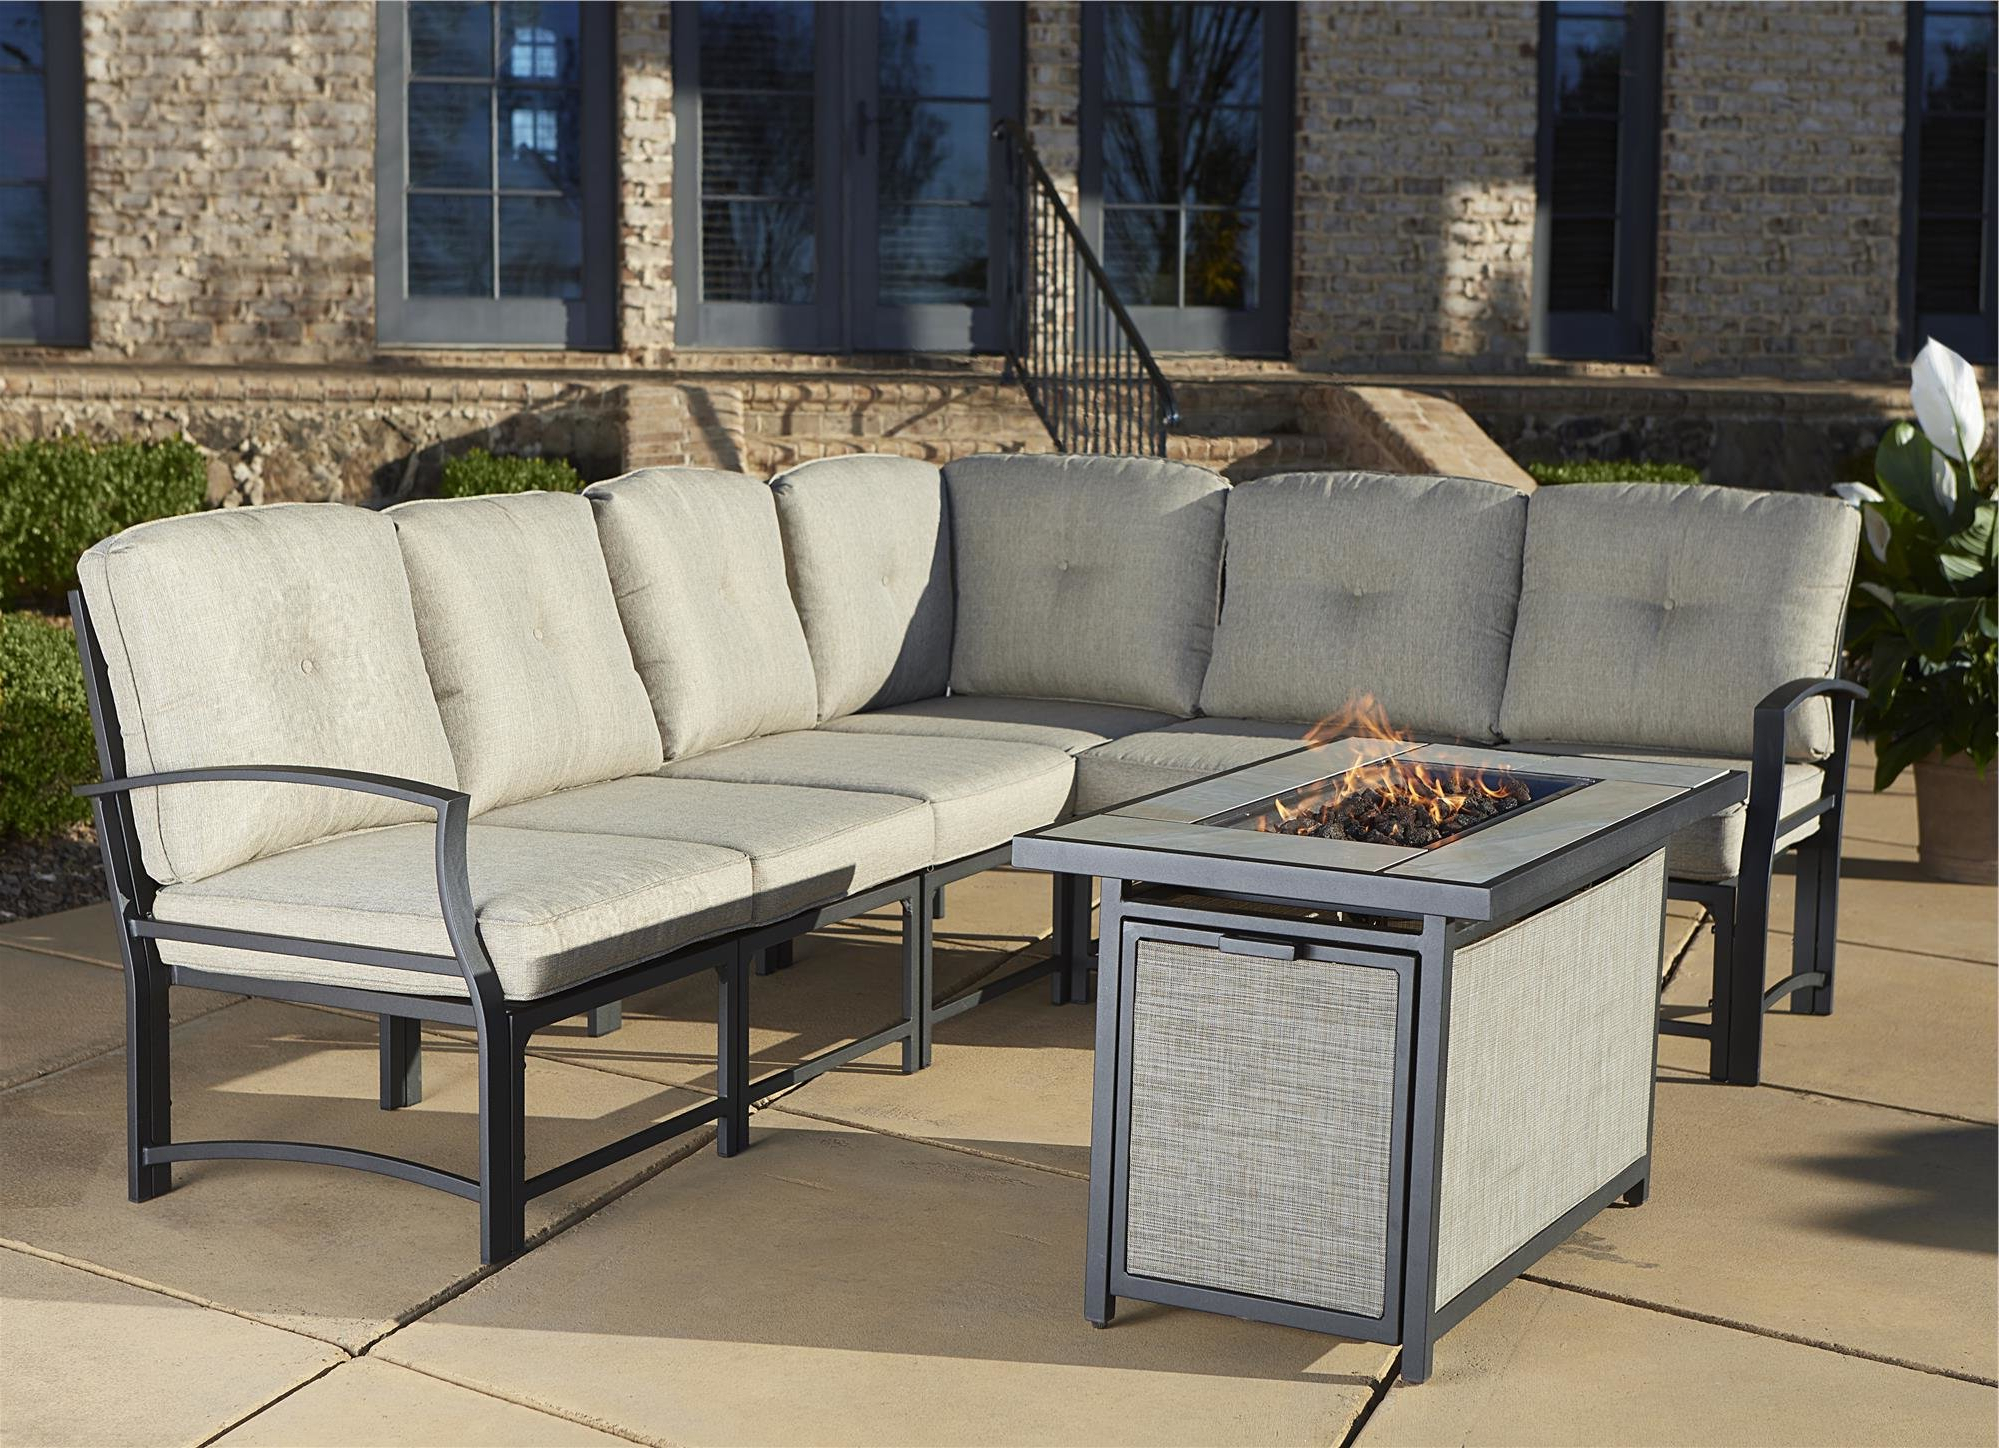 Birch Lane Intended For Well Known Purington Circular Patio Sectionals With Cushions (View 10 of 20)